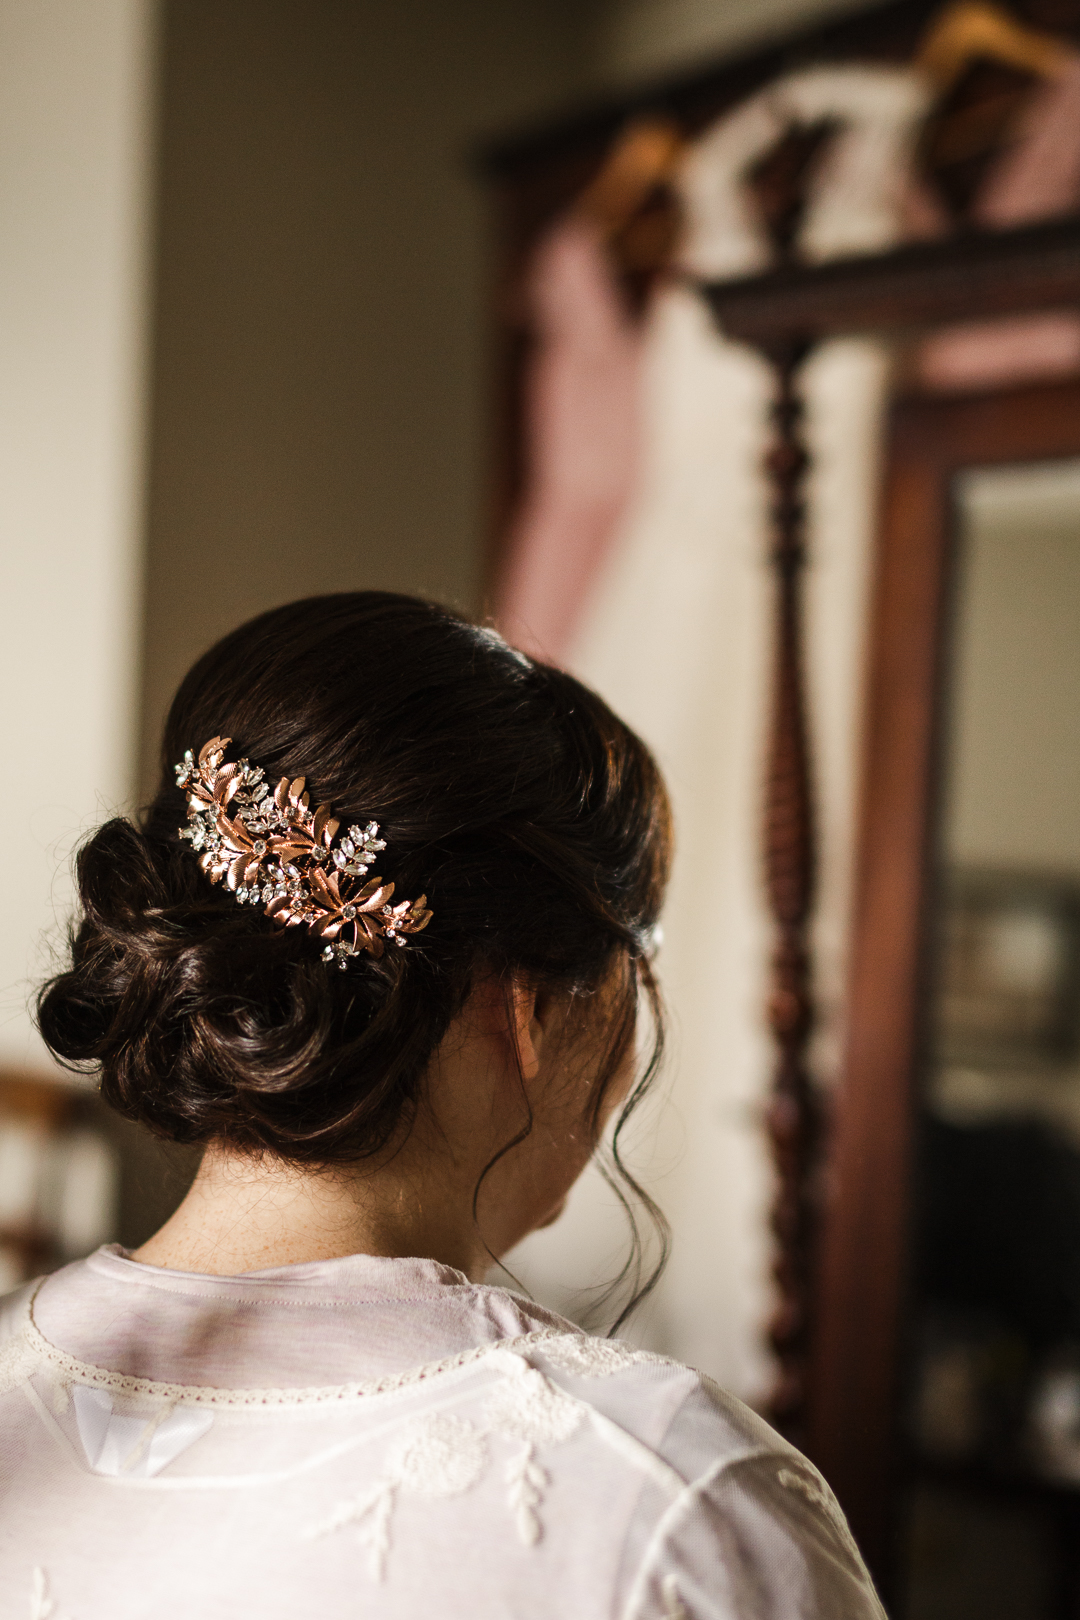 The bride was rocking an elegant wavy updo and a vintage copper hairpiece with rhinestones